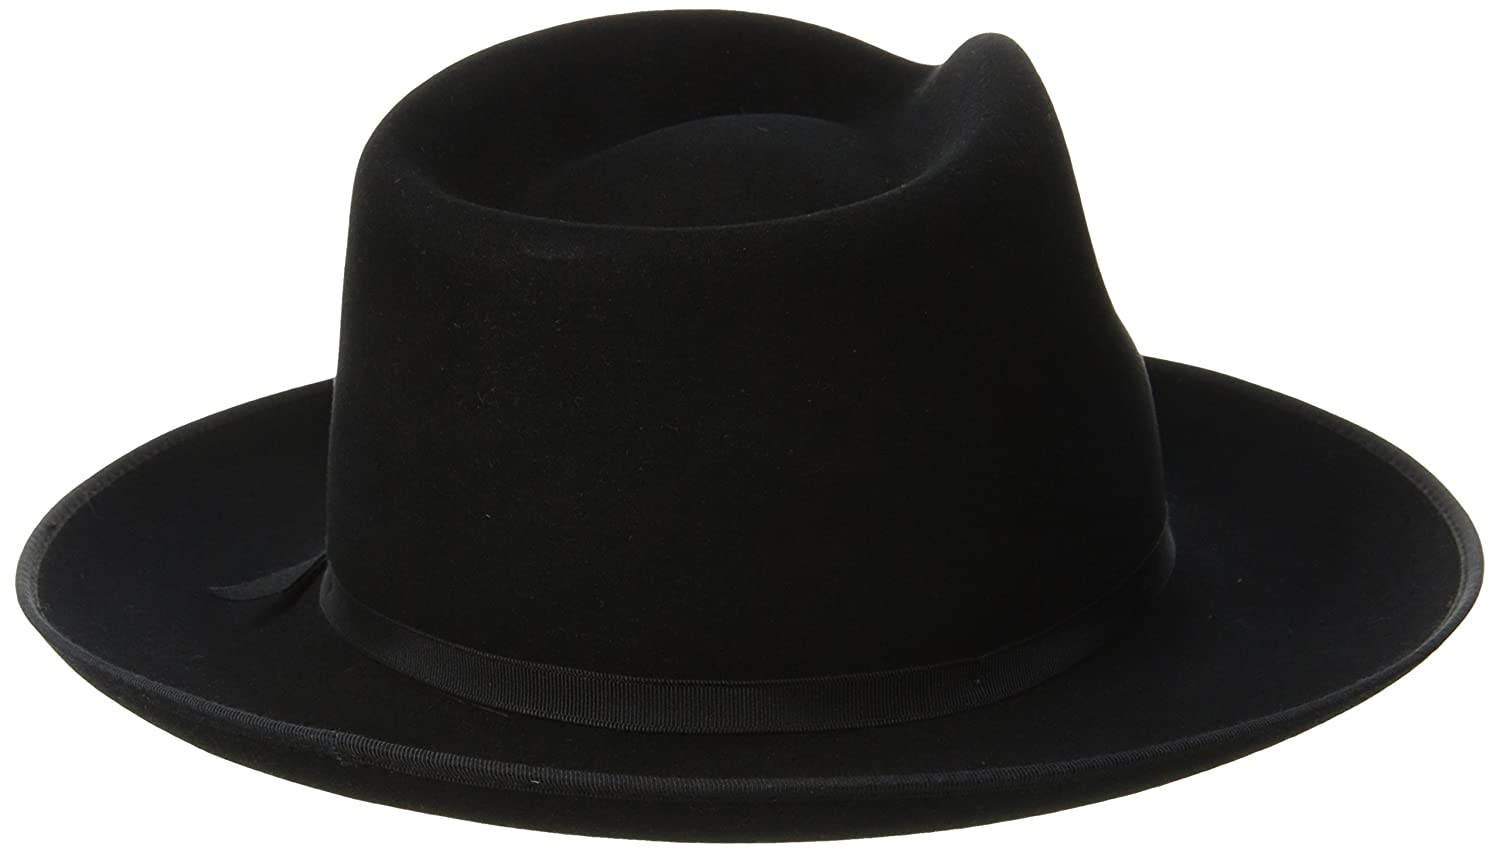 b0f92b8513a59 Stetson Men s Stratoliner Royal Quality Fur Felt Hat at Amazon Men s  Clothing store